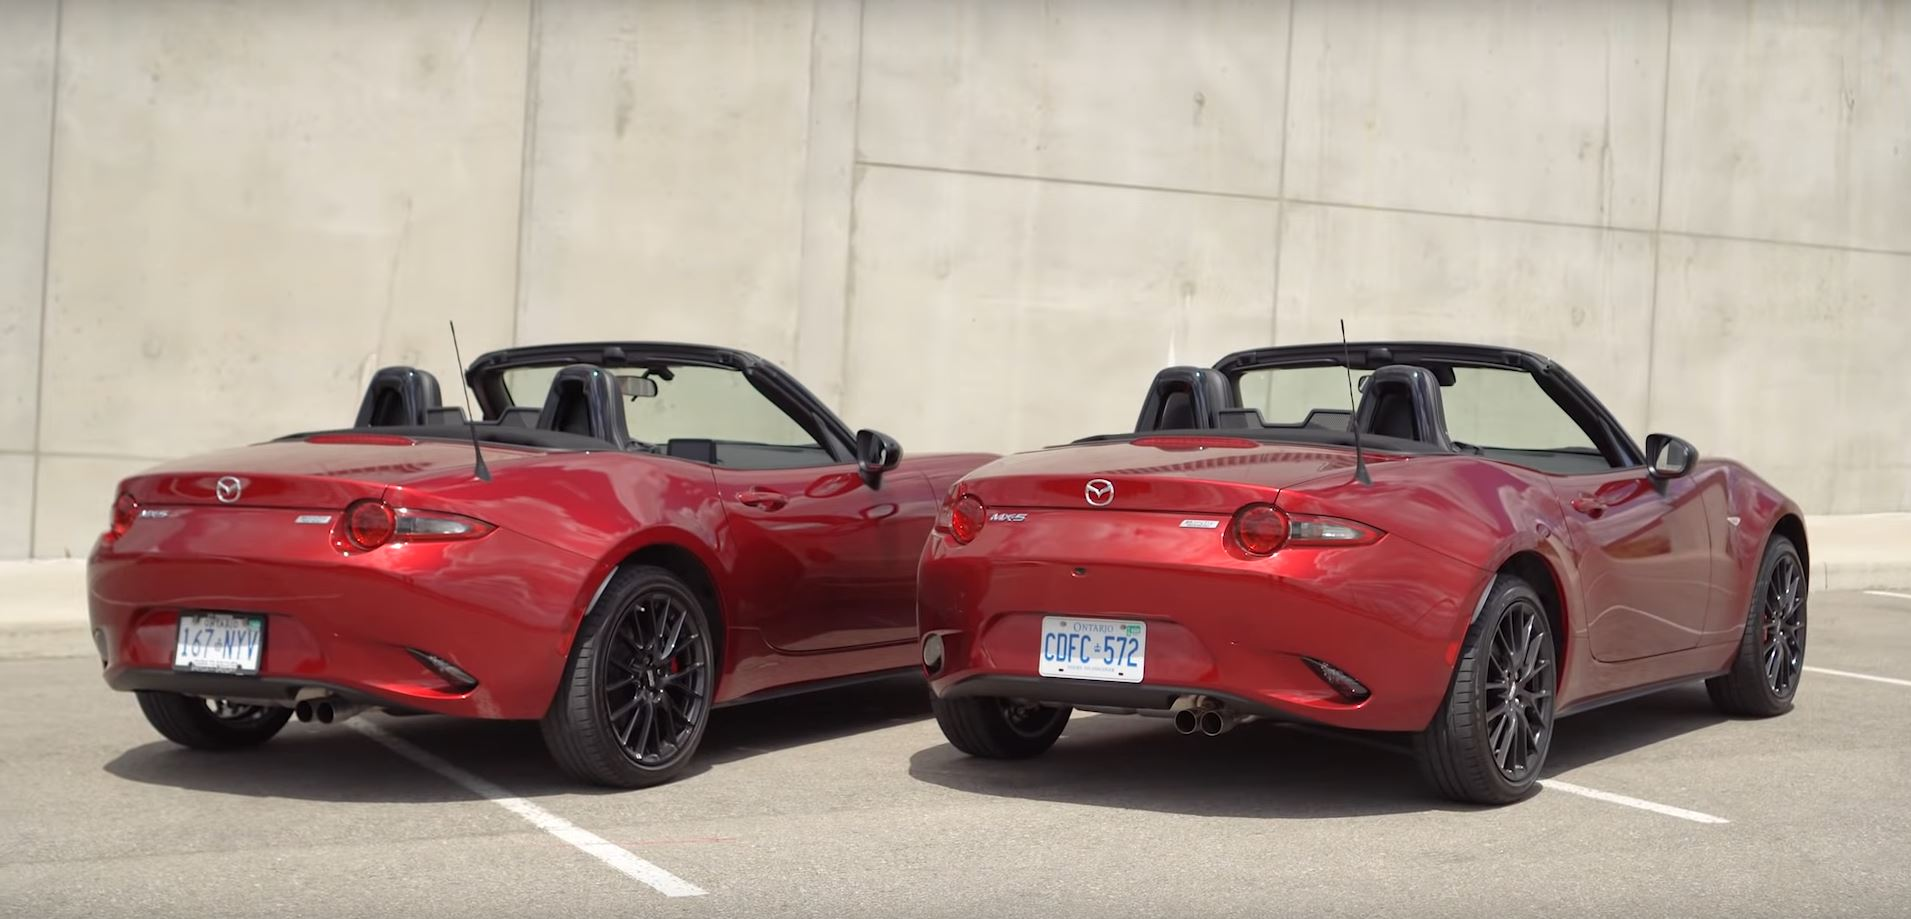 2019 mazda mx 5 review shows more power makes a difference autoevolution. Black Bedroom Furniture Sets. Home Design Ideas